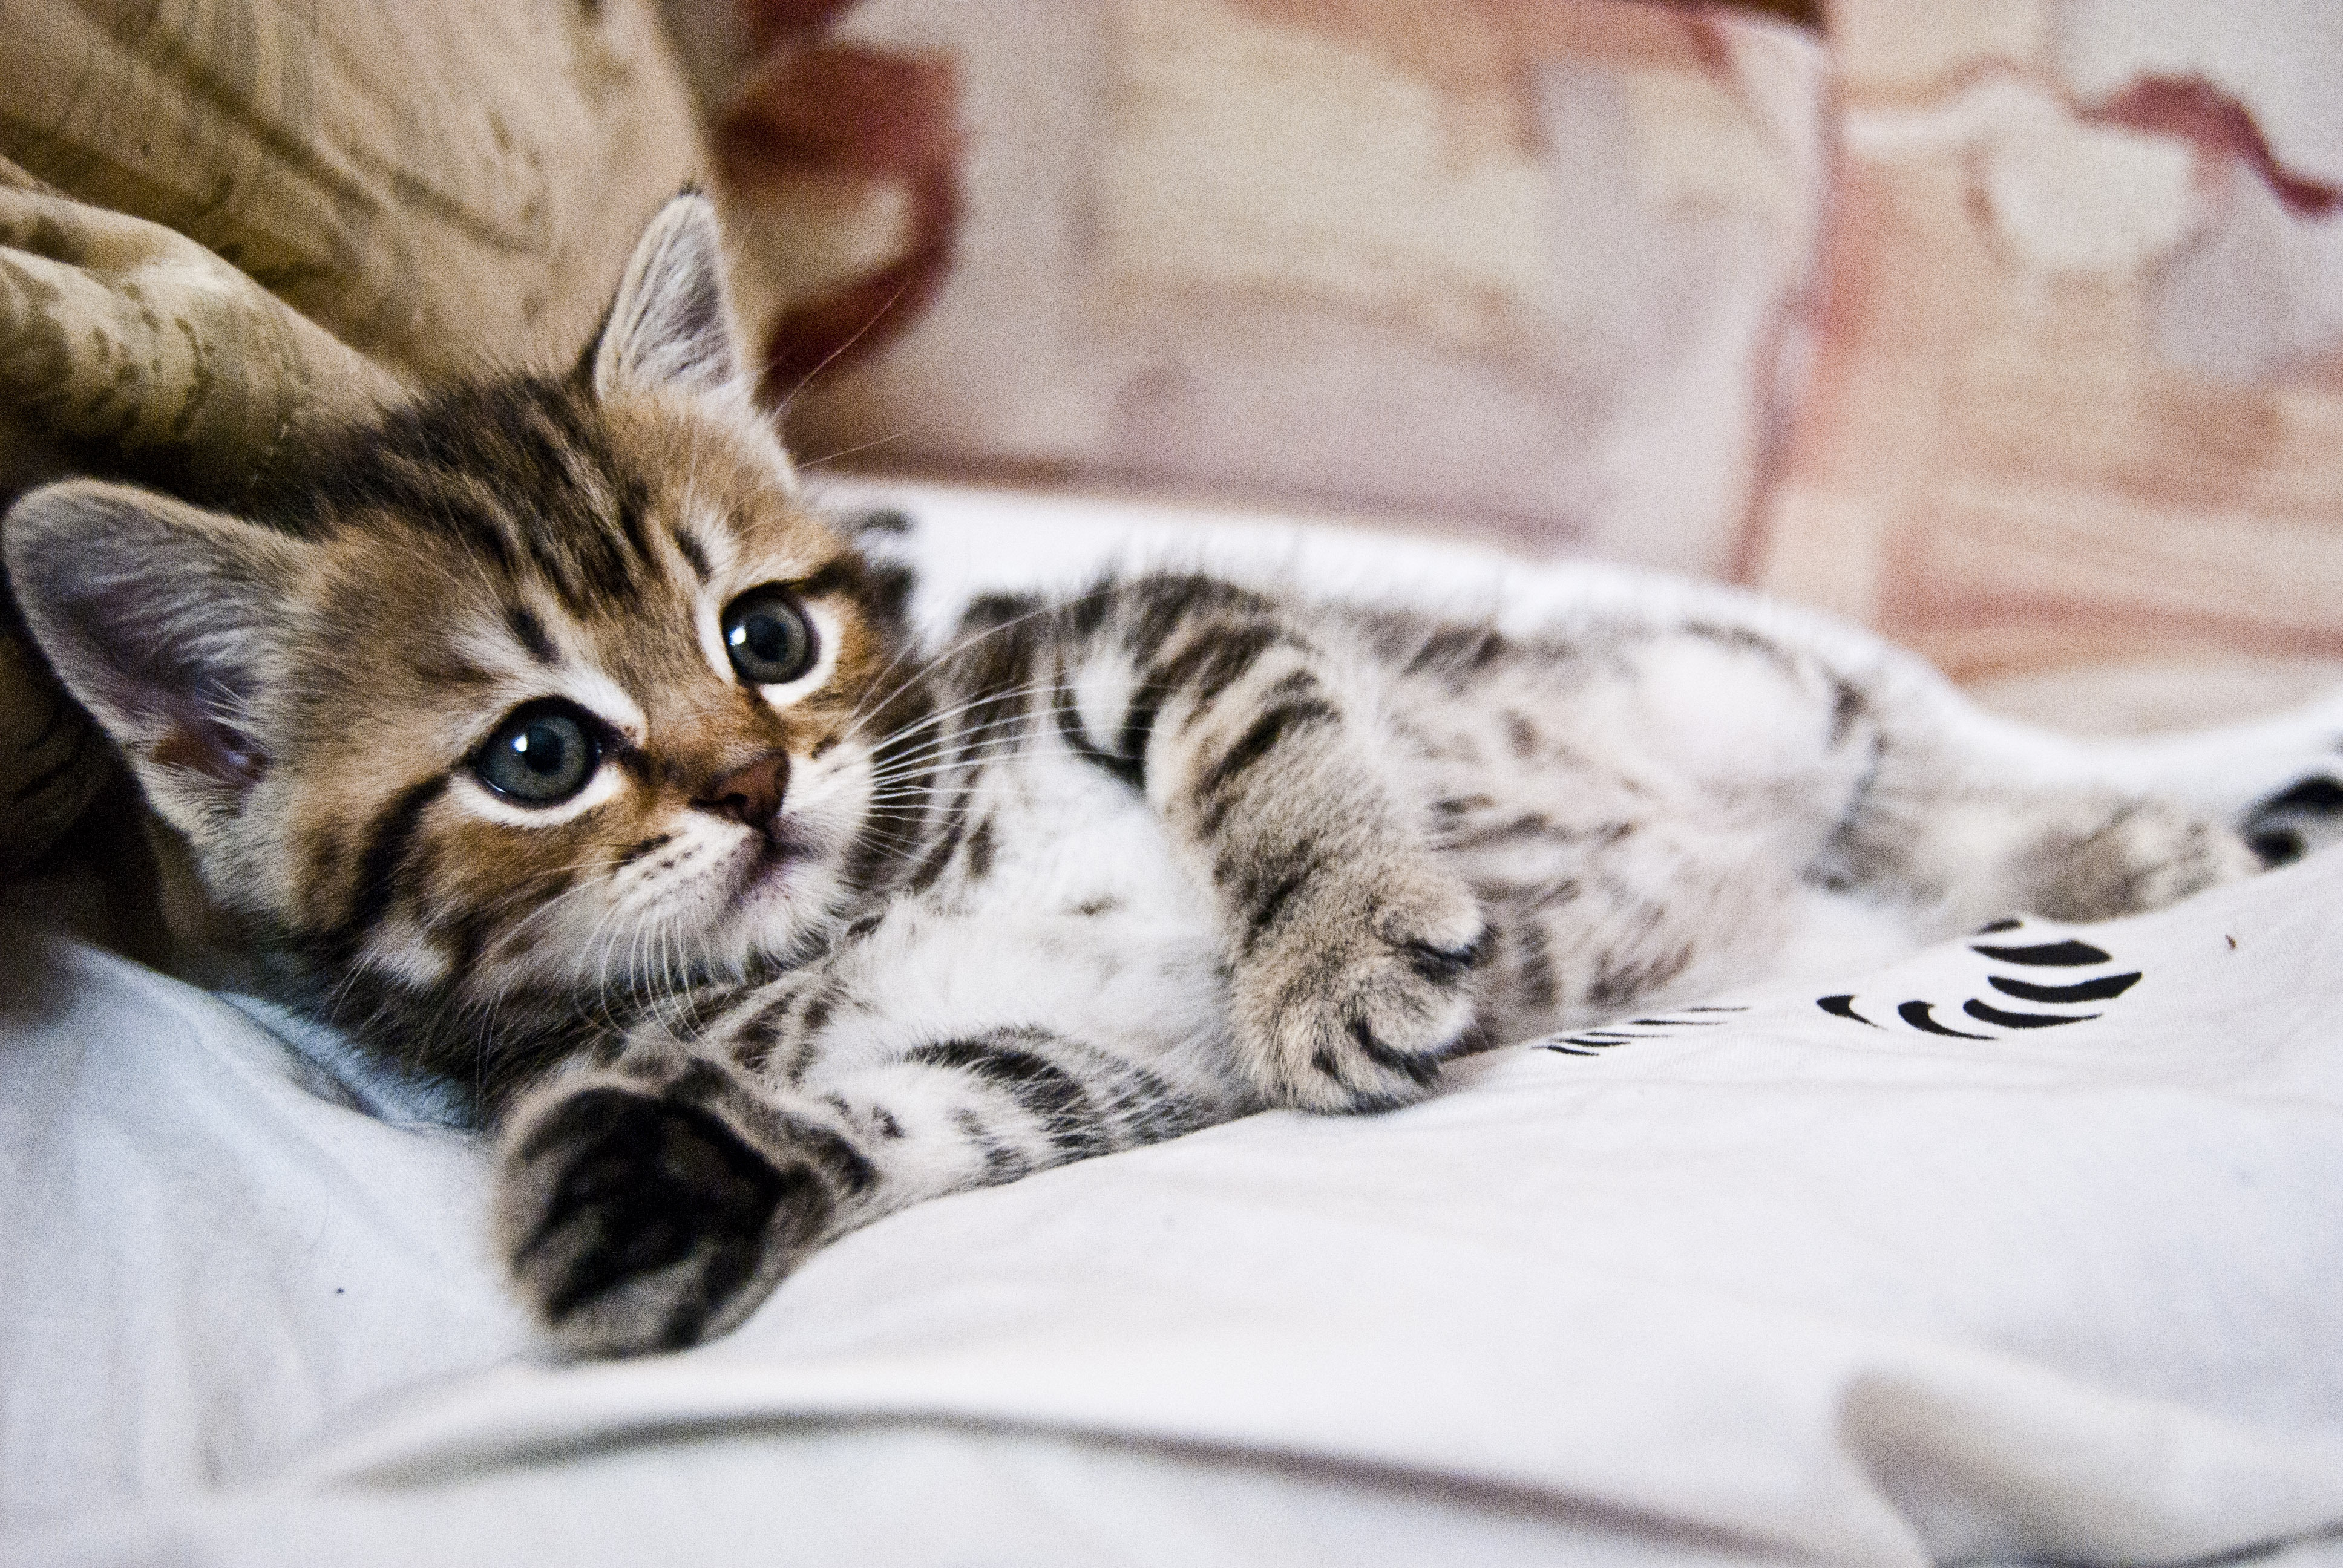 131356 download wallpaper Animals, Kitty, Kitten, Lies, Striped, Small, Nice, Sweetheart screensavers and pictures for free